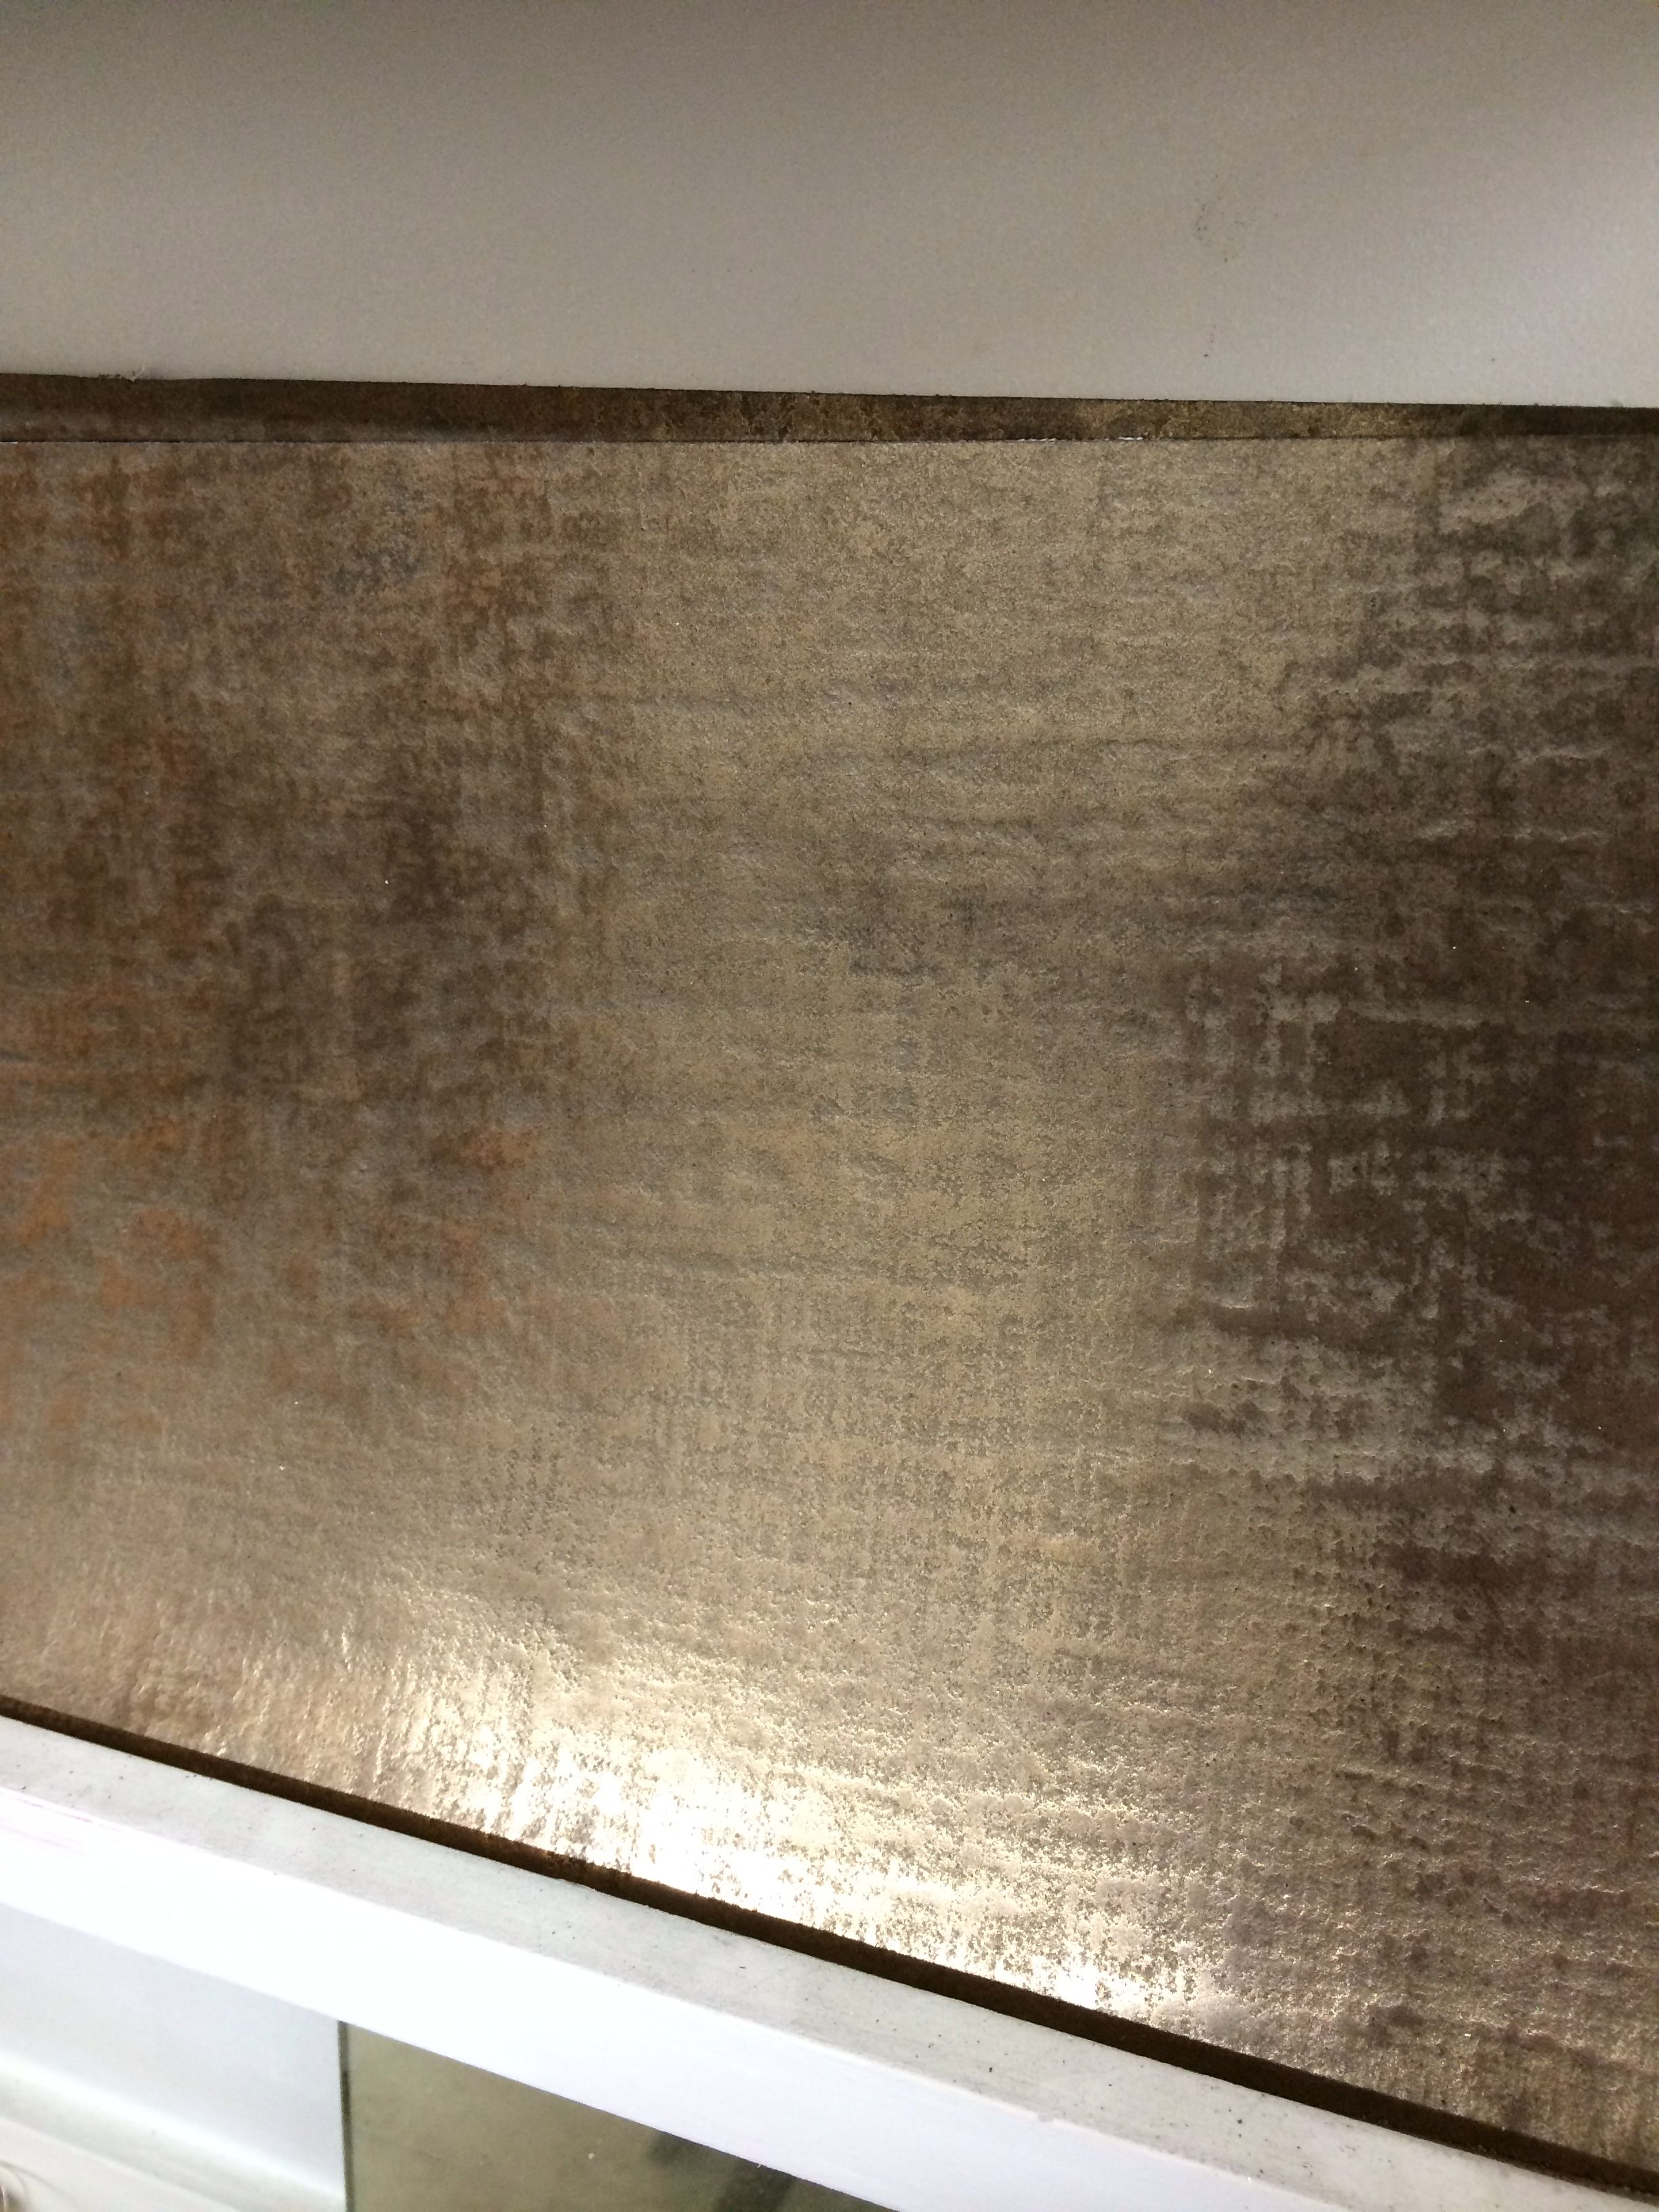 Linen textured bronze flexible metal coating suitable for wall and furniture treatment handmade by stuart